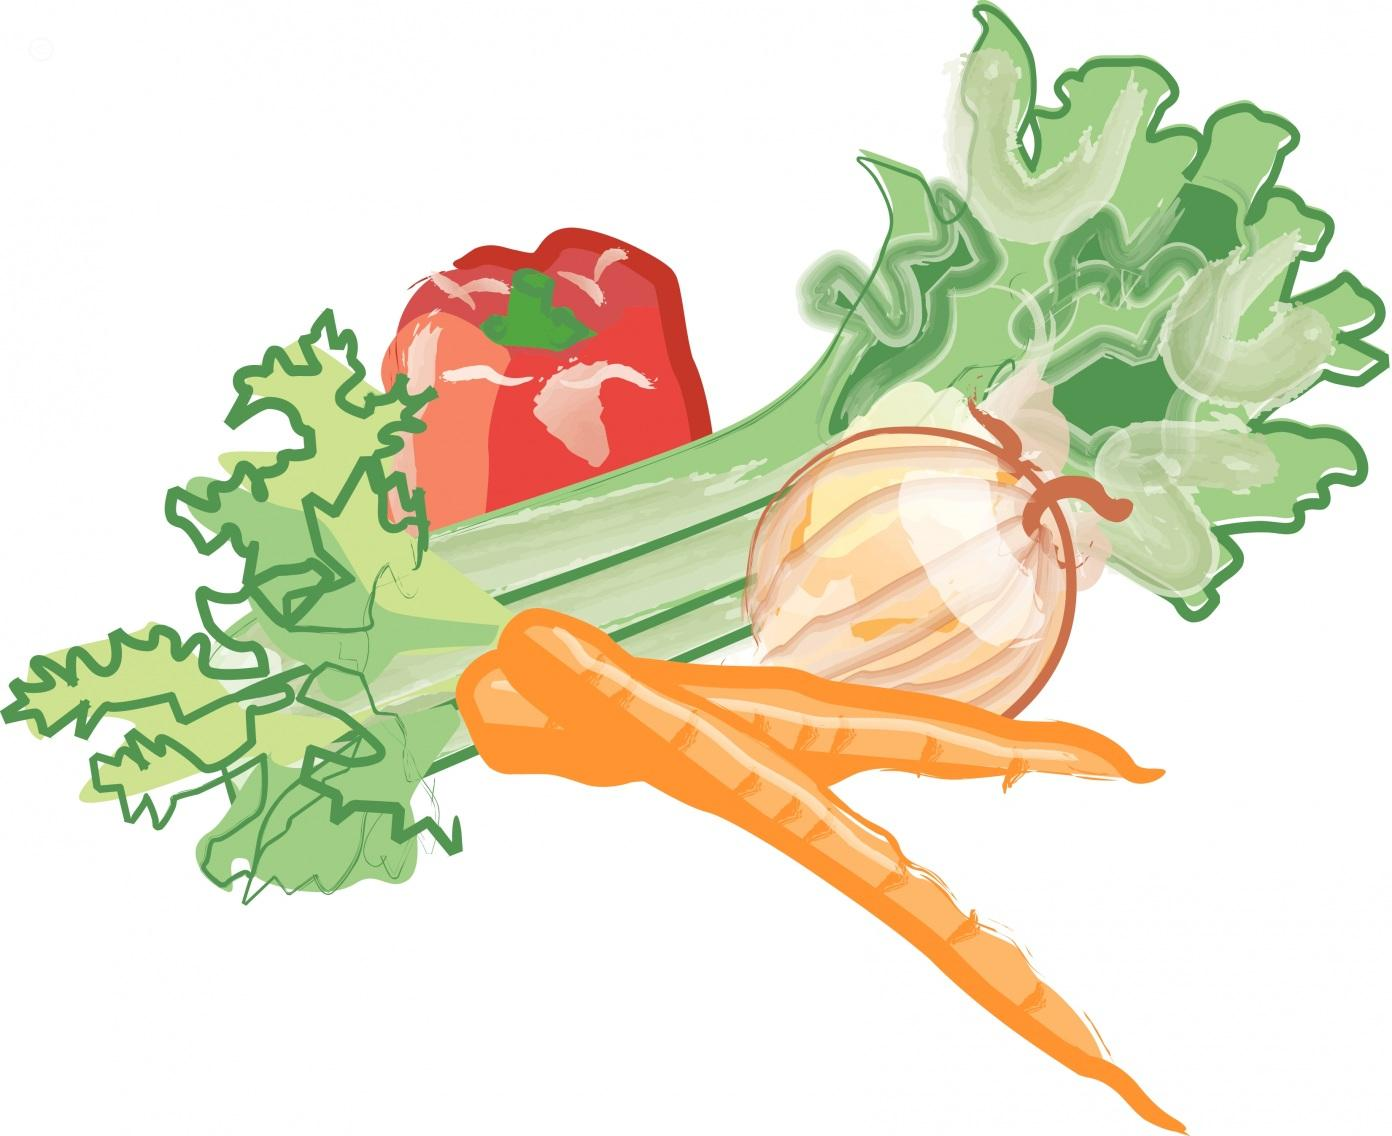 Free Vegetables Cliparts, Download Free Clip Art, Free Clip.